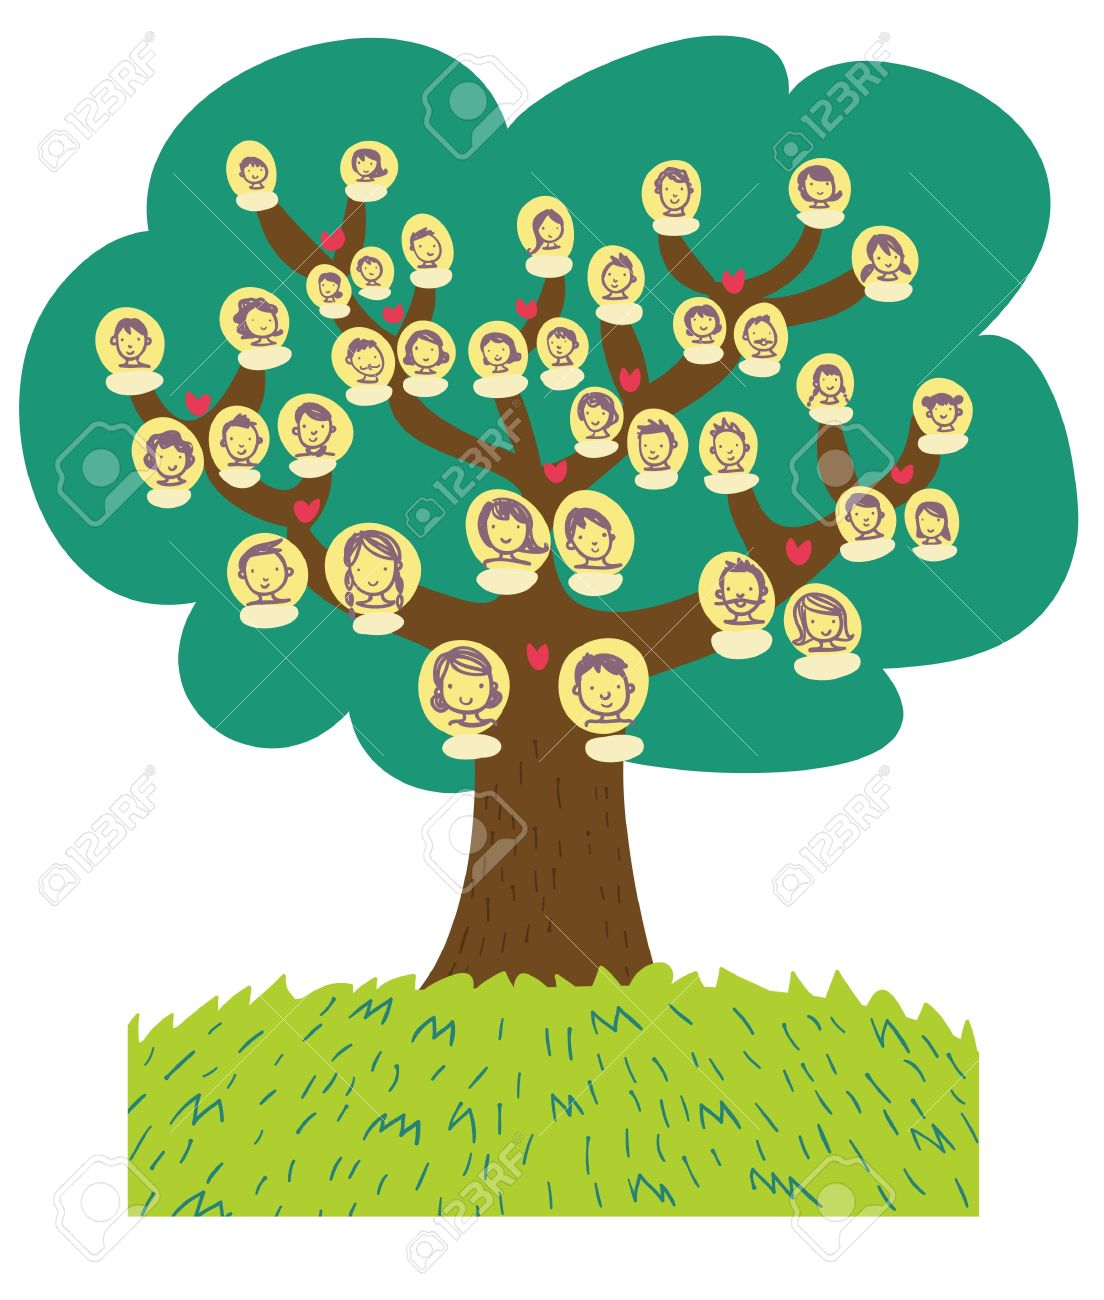 Funny Cartoon Family Tree Stock Photo Picture And Royalty Free Image Image 13514383 ✓ free for commercial use ✓ high quality images. funny cartoon family tree